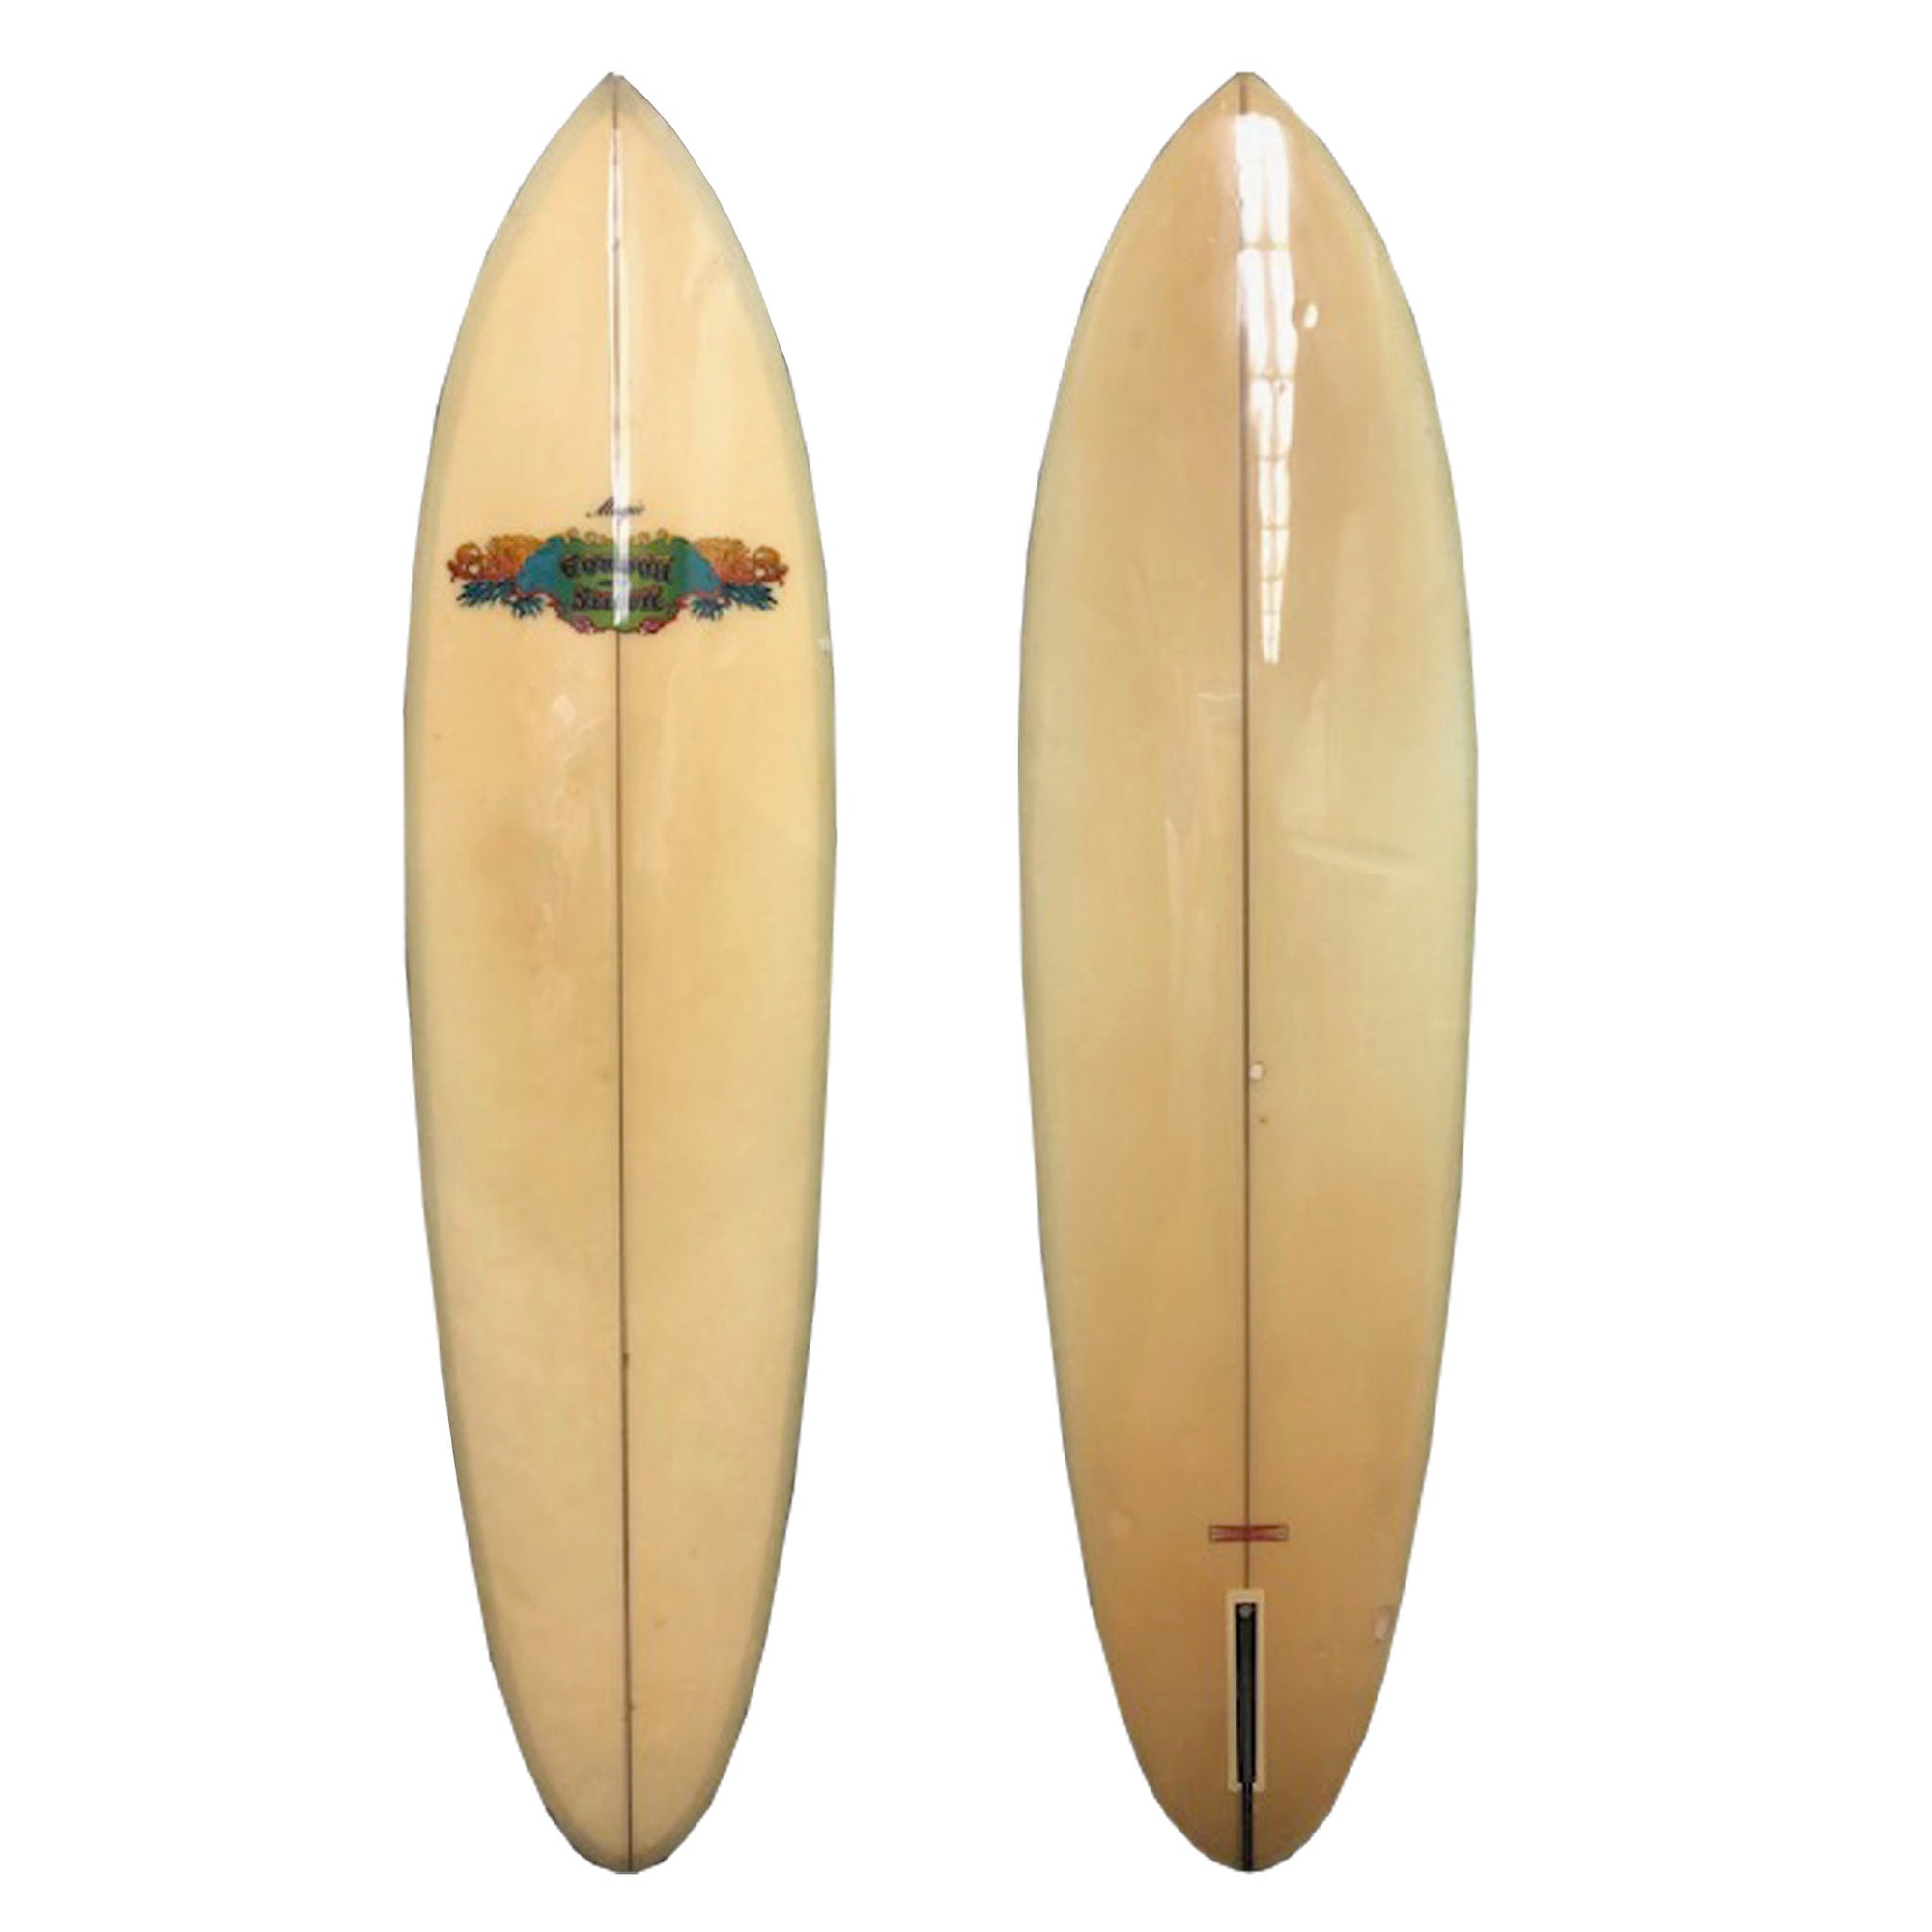 Gordon and Smith Magic Model 7'8 Collector Surfboard